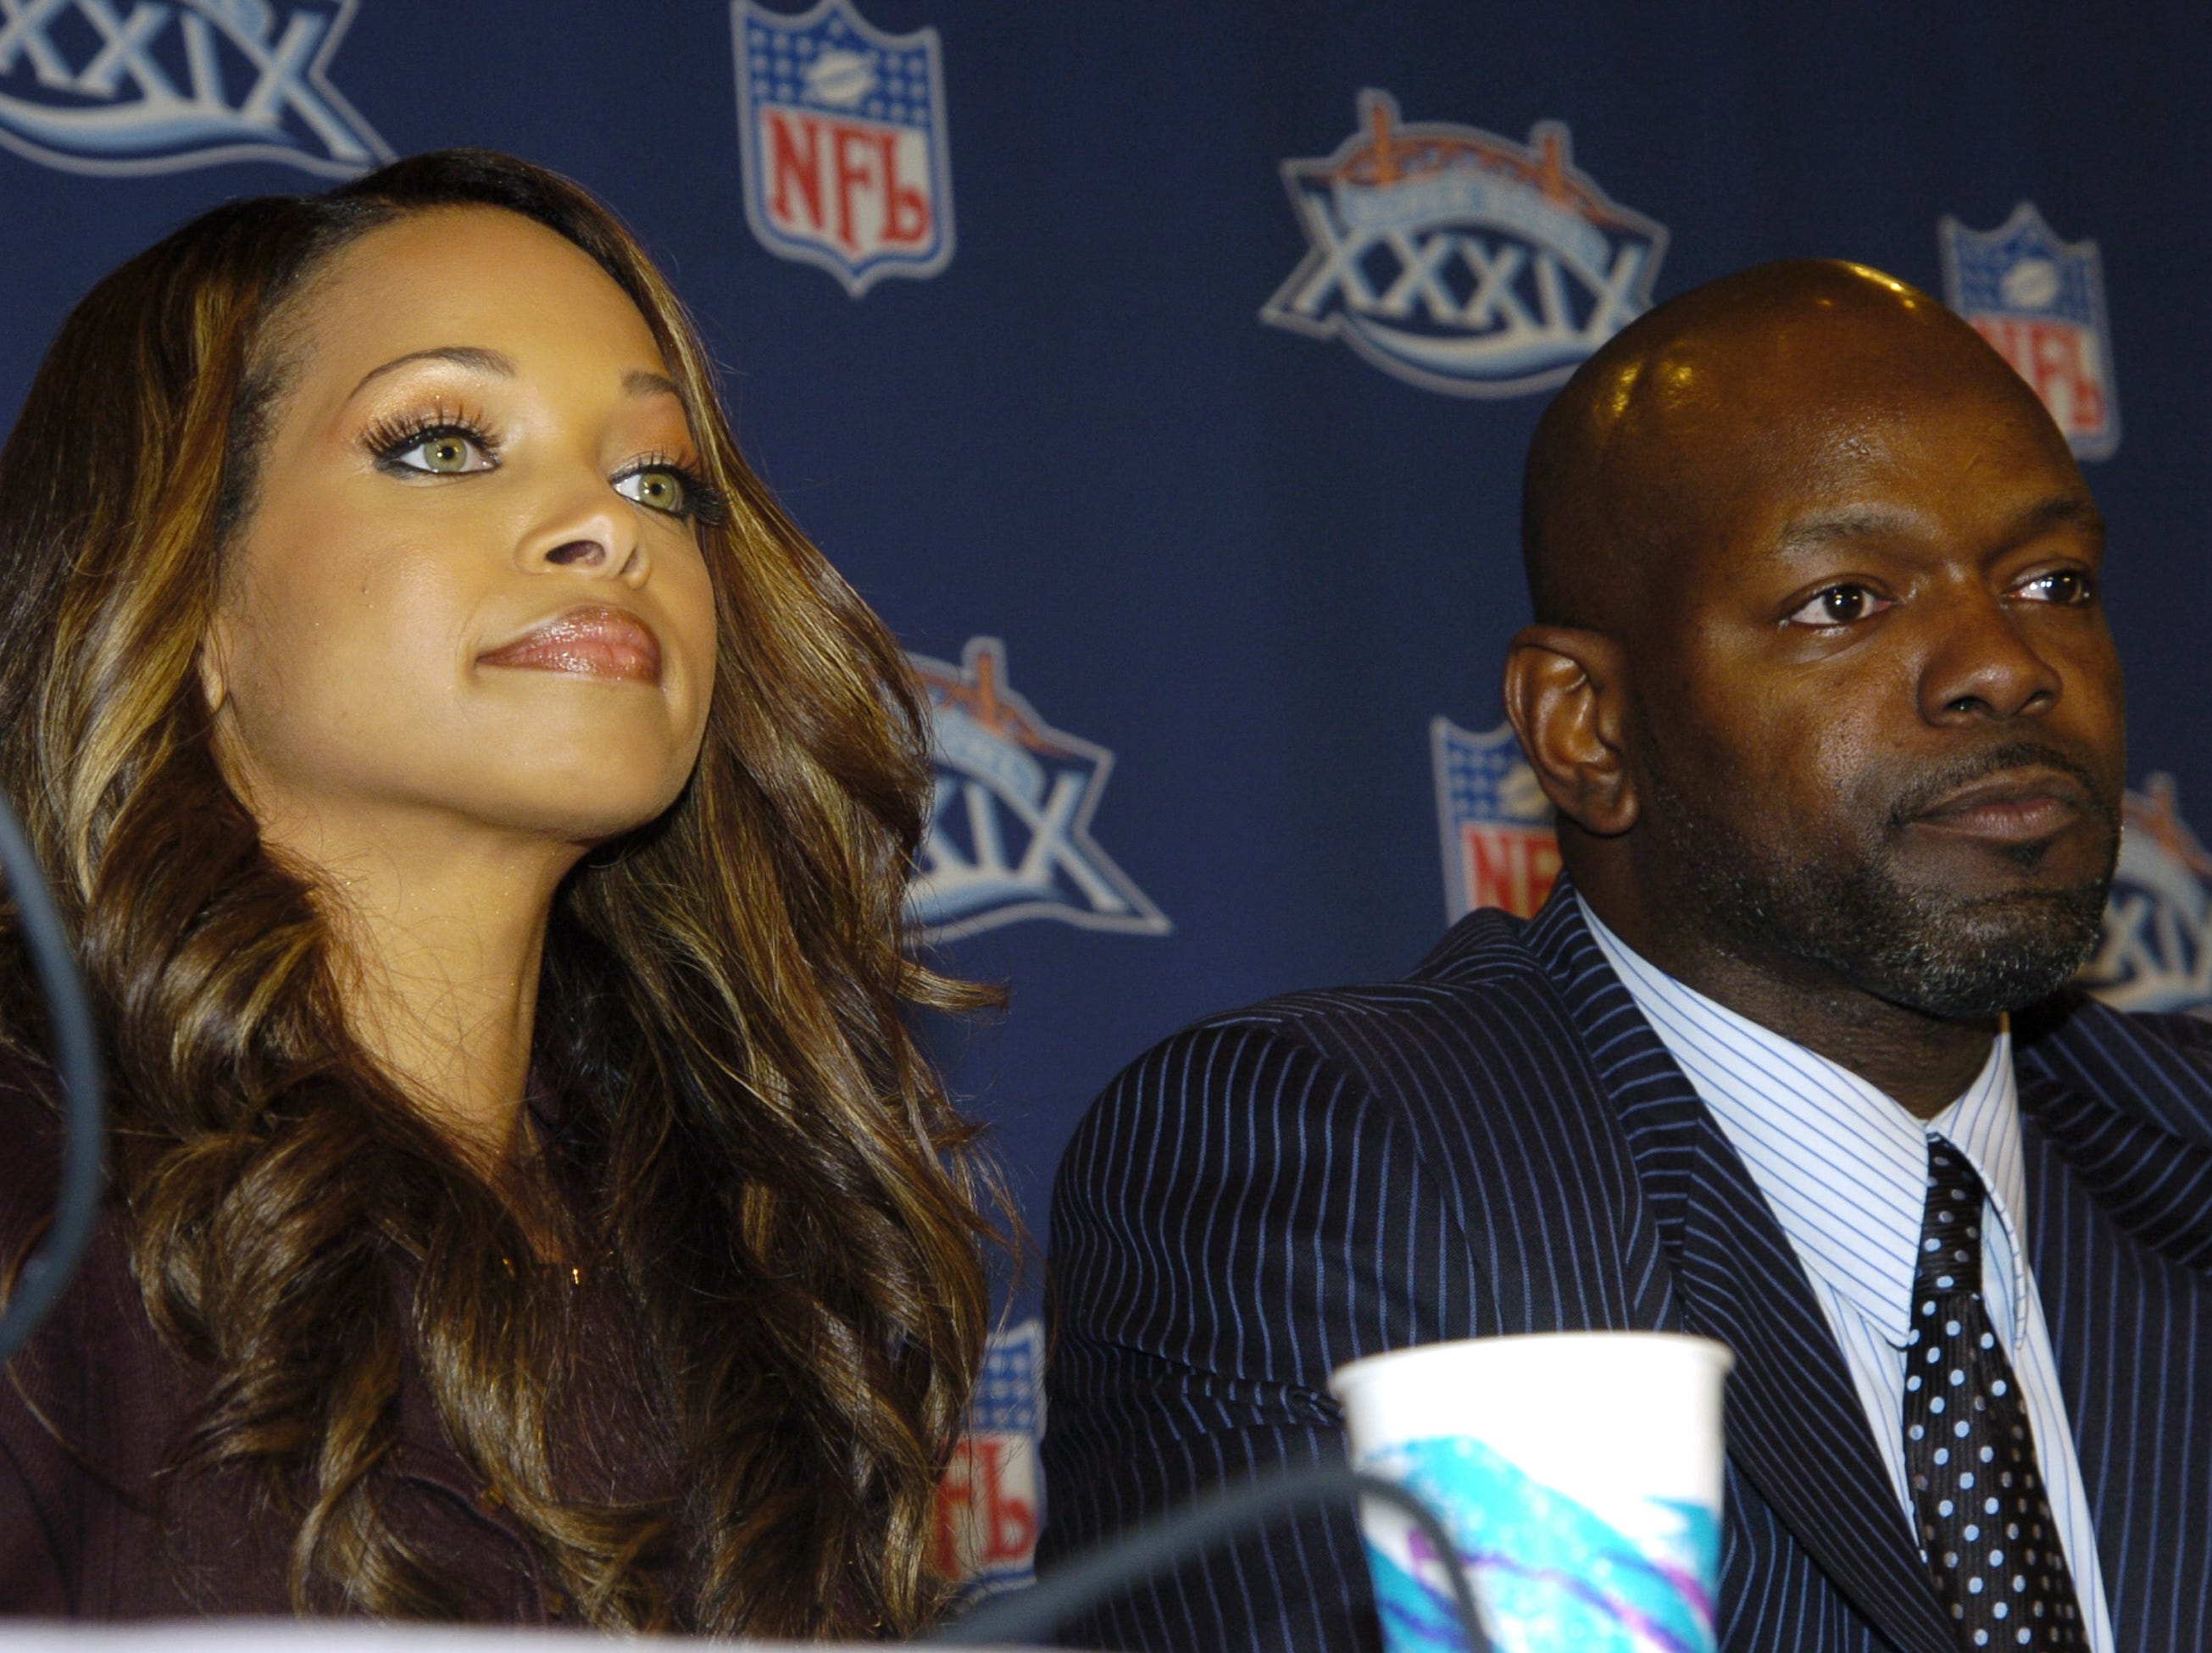 Emmitt Smith sits next to his wife Pat  as he announcing his retirement from the NFL after 15 years during a press conference on February 3, 2005 at the Prime F. Osborn III Convention Center in Jacksonville, Florida on February 3, 2005  (Photo by Al Messerschmidt/Getty Images)